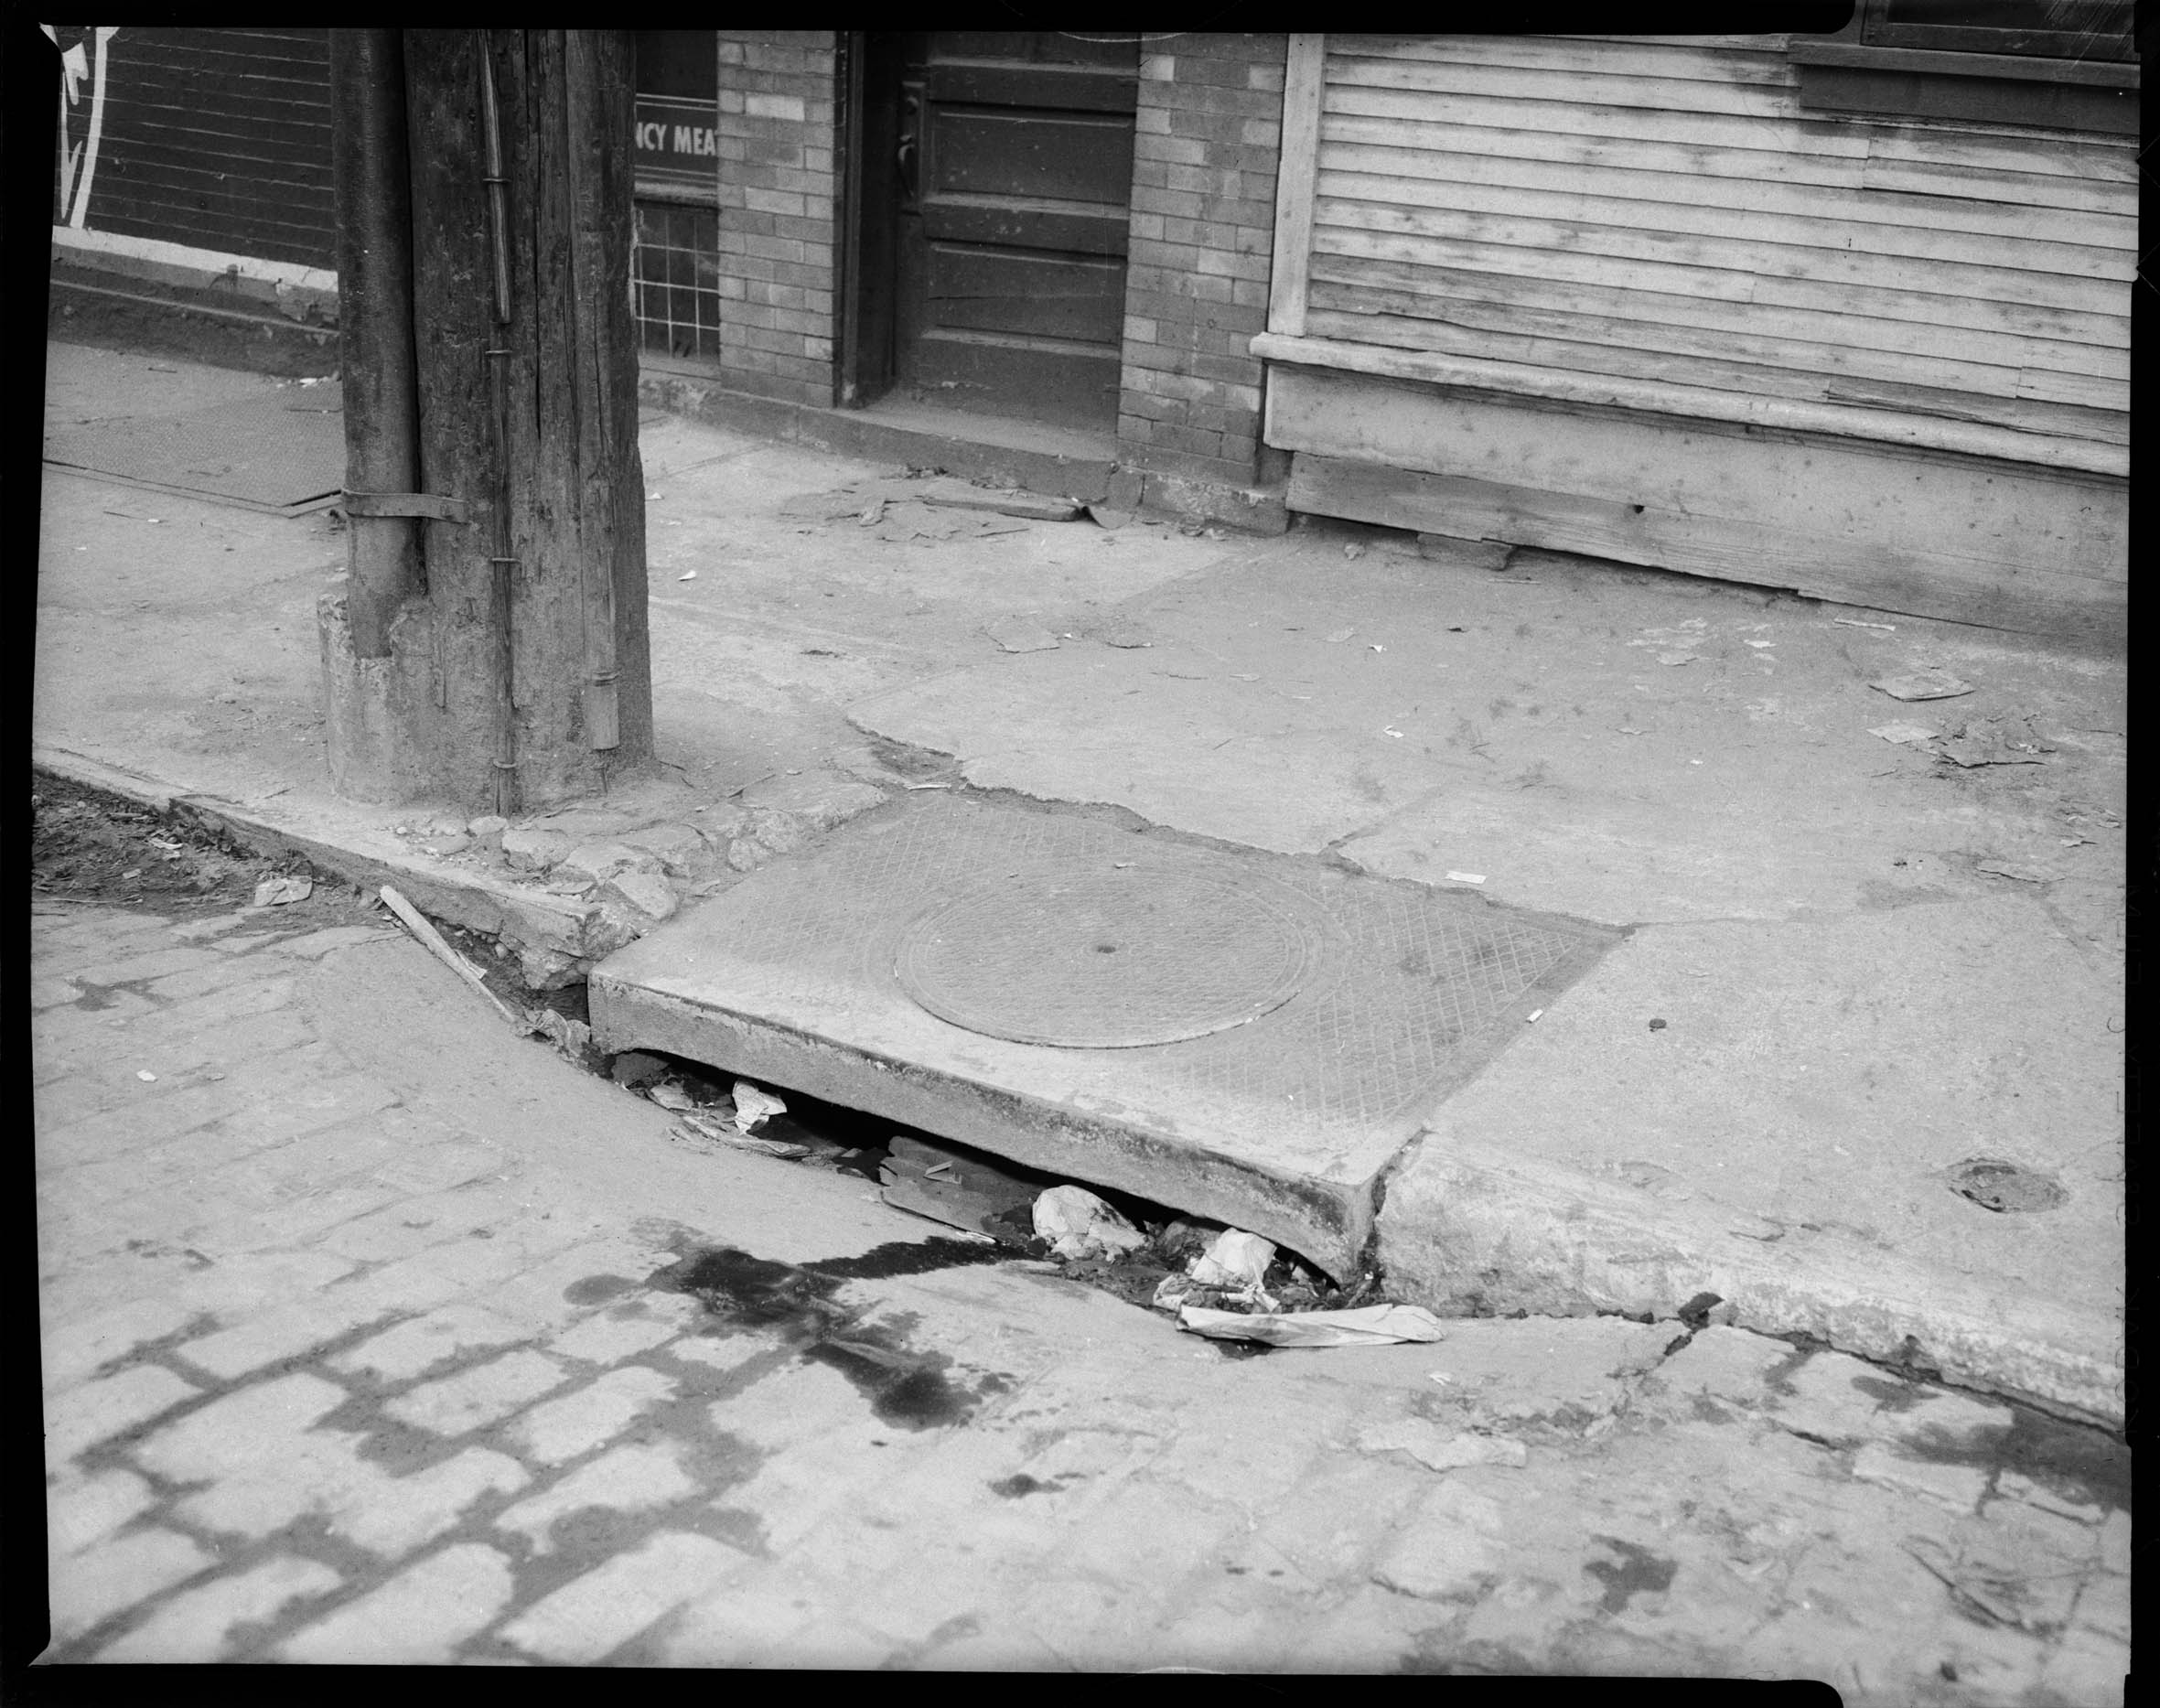 Sidewalk with patched pavement and clogged sewer drain with store 2361x1867